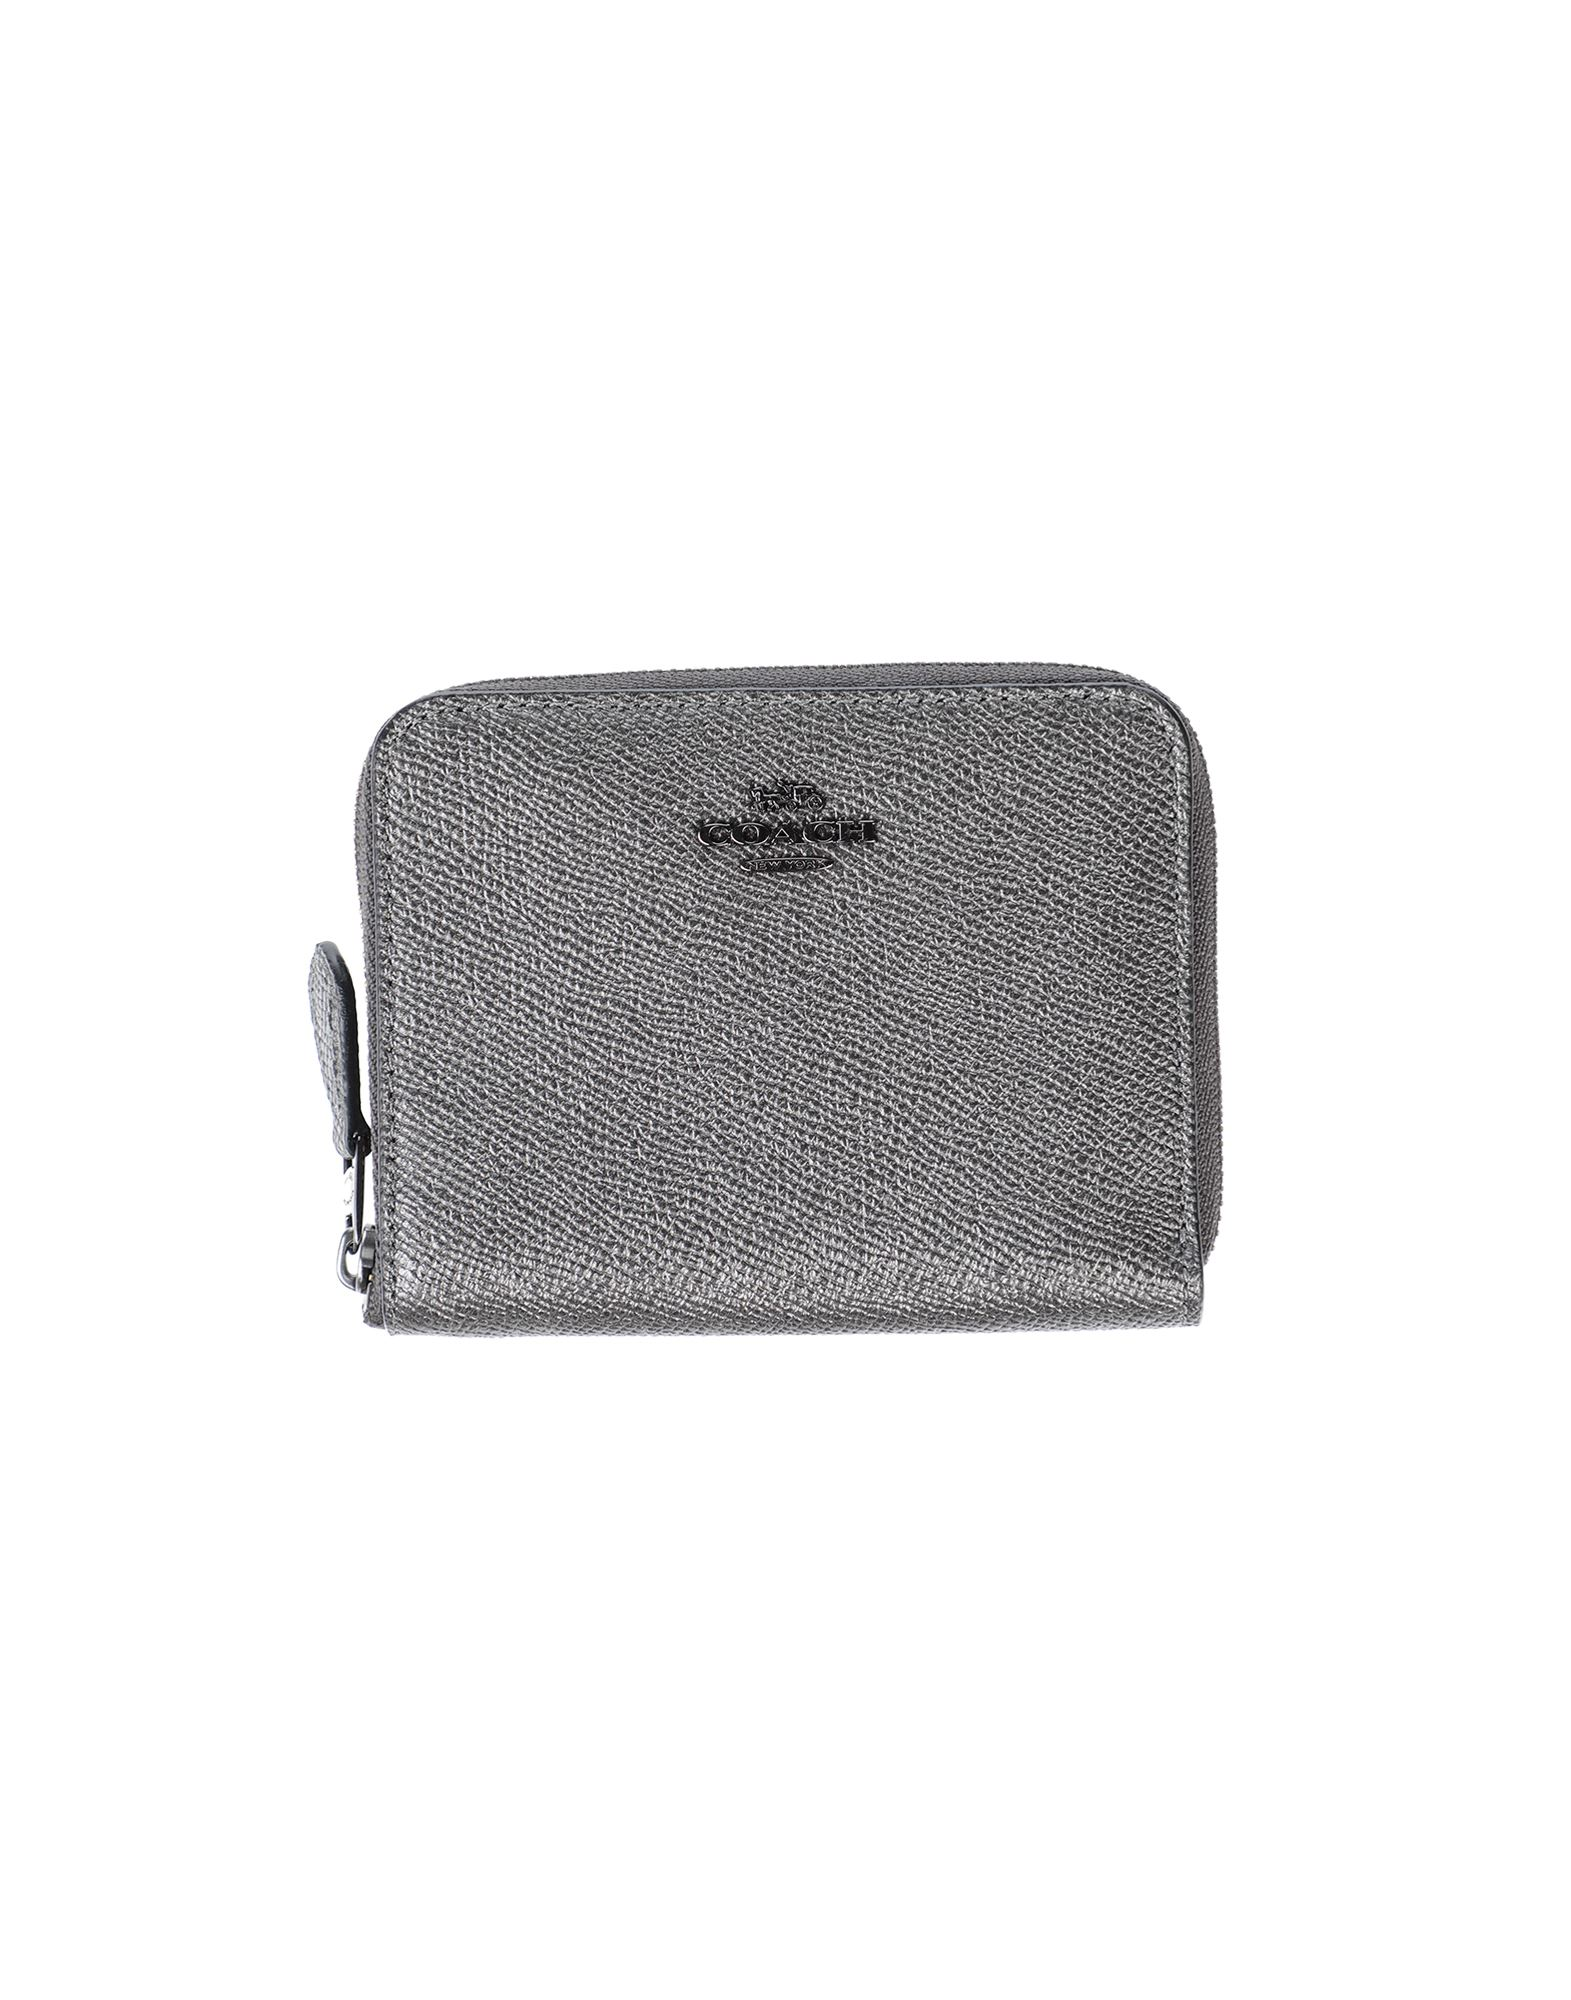 COACH Wallets. printed leather, logo, laminated effect, solid color, zipper closure, leather lining, internal card slots, internal zip pocket, contains non-textile parts of animal origin. Soft Leather